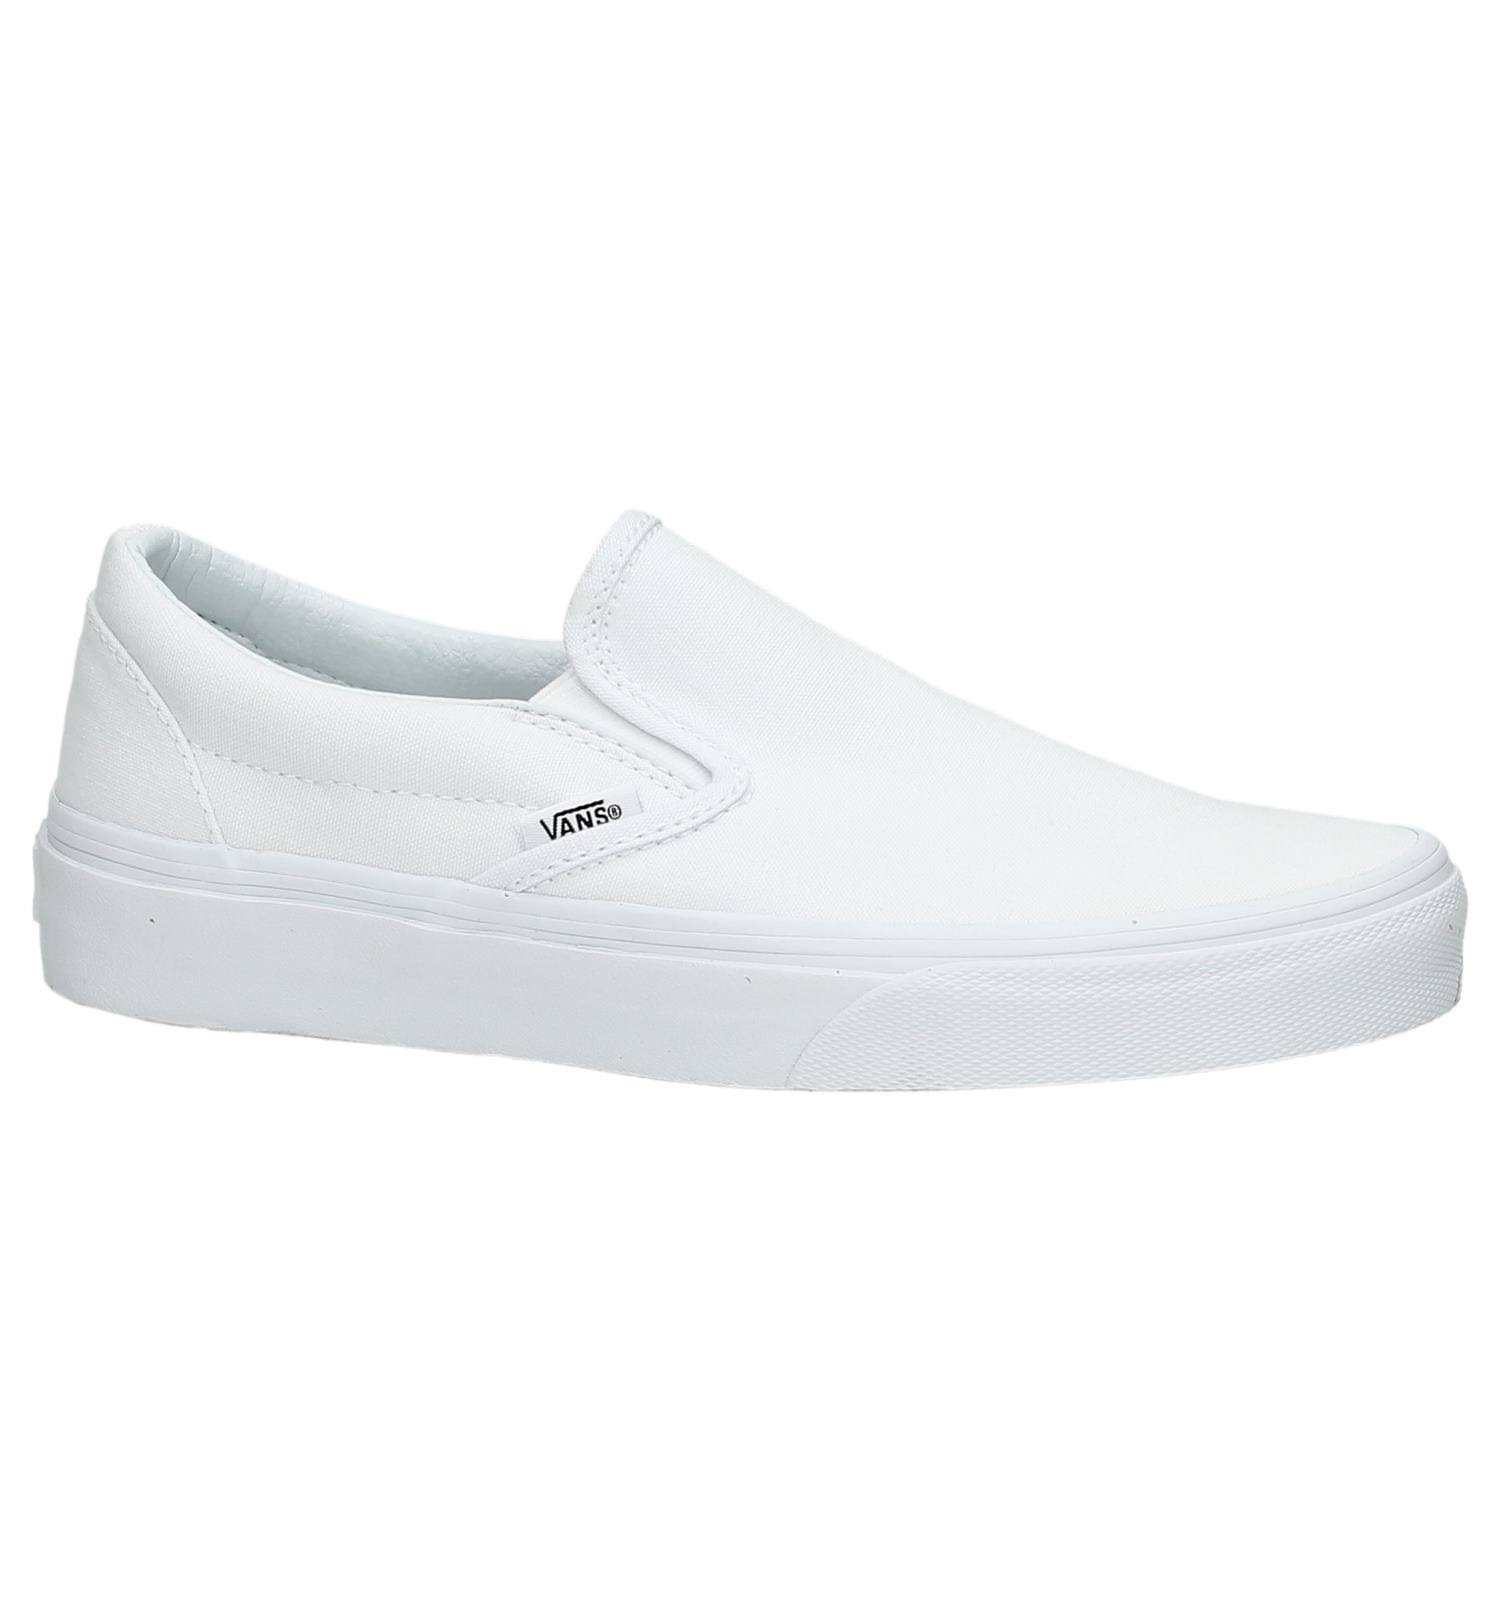 Vans Adult Classic Slip On Sneakers - White, 6 US